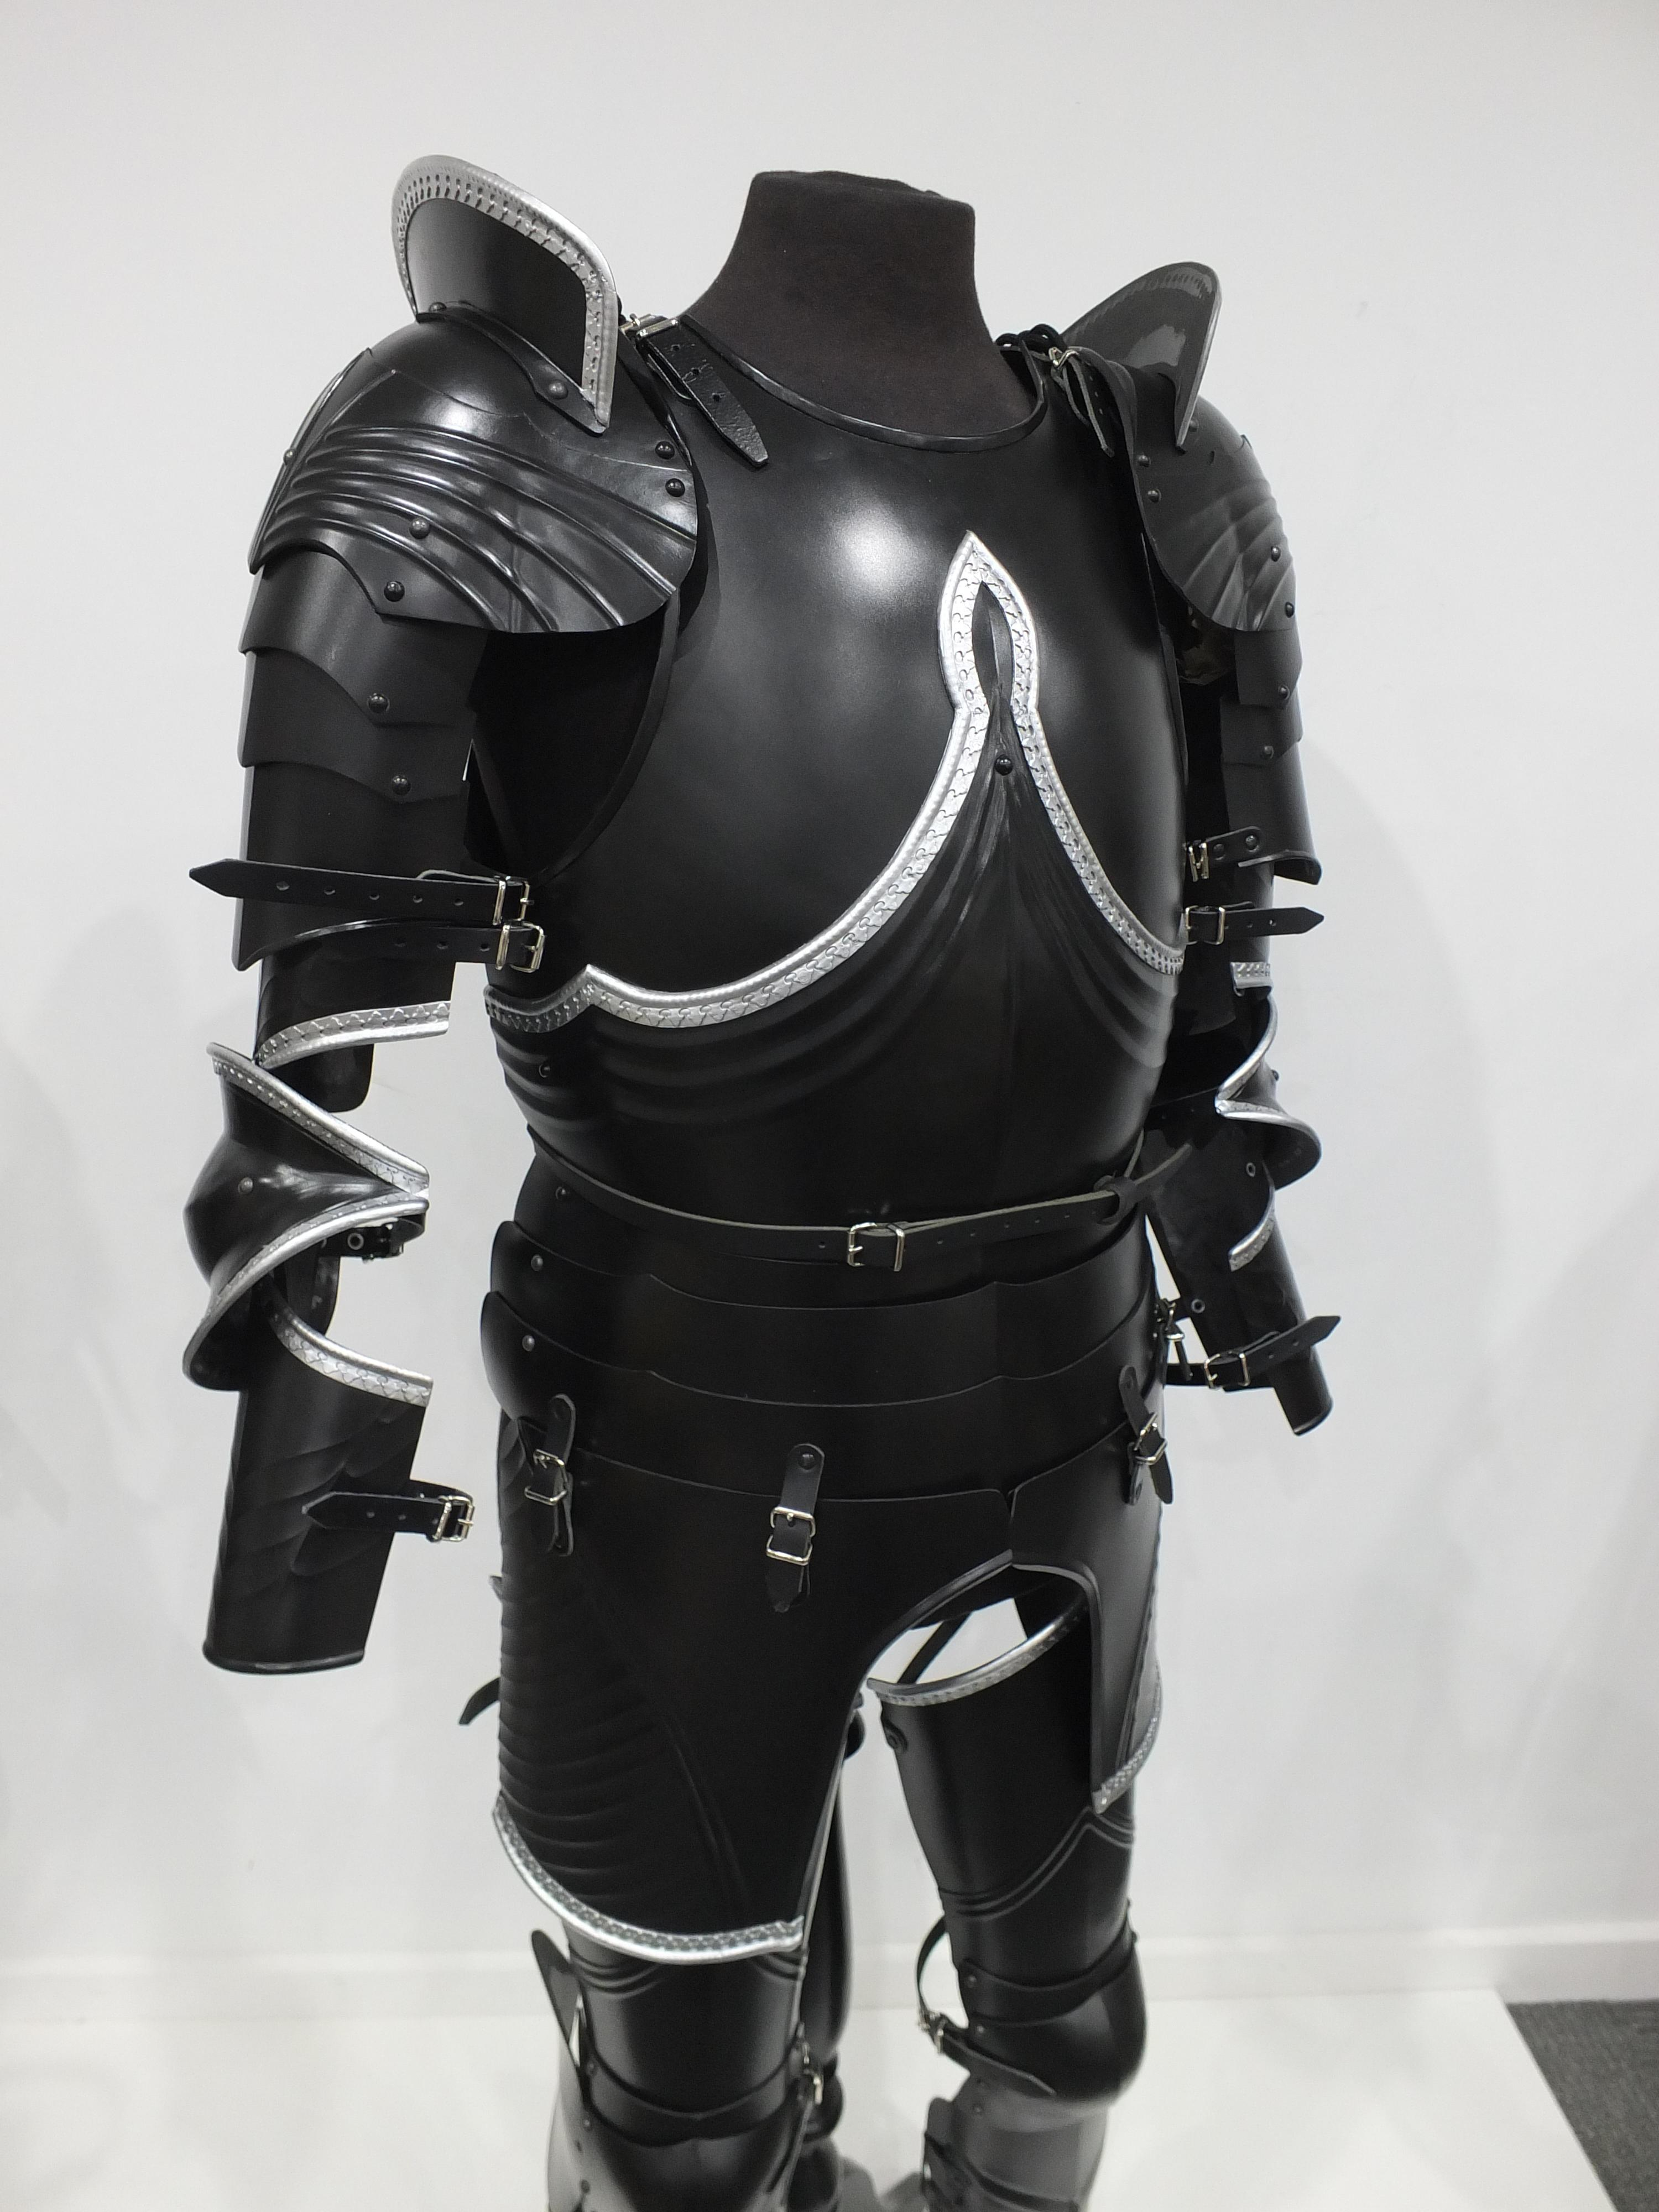 Decorative Gothic armour set in black and bright steel finish